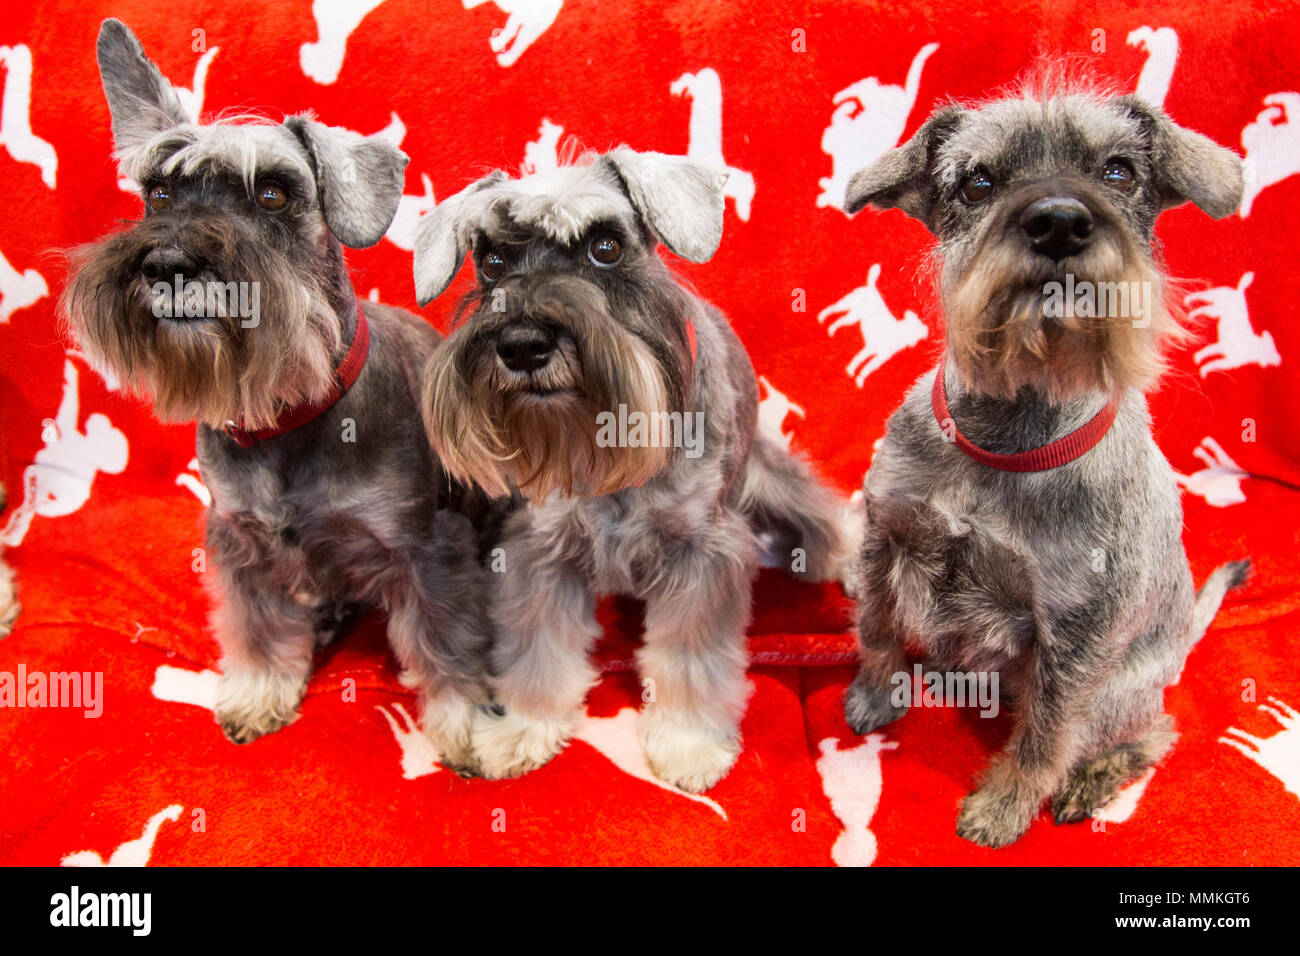 Dortmund, Germany  12 May 2018  Miniature Schnauzers that are used